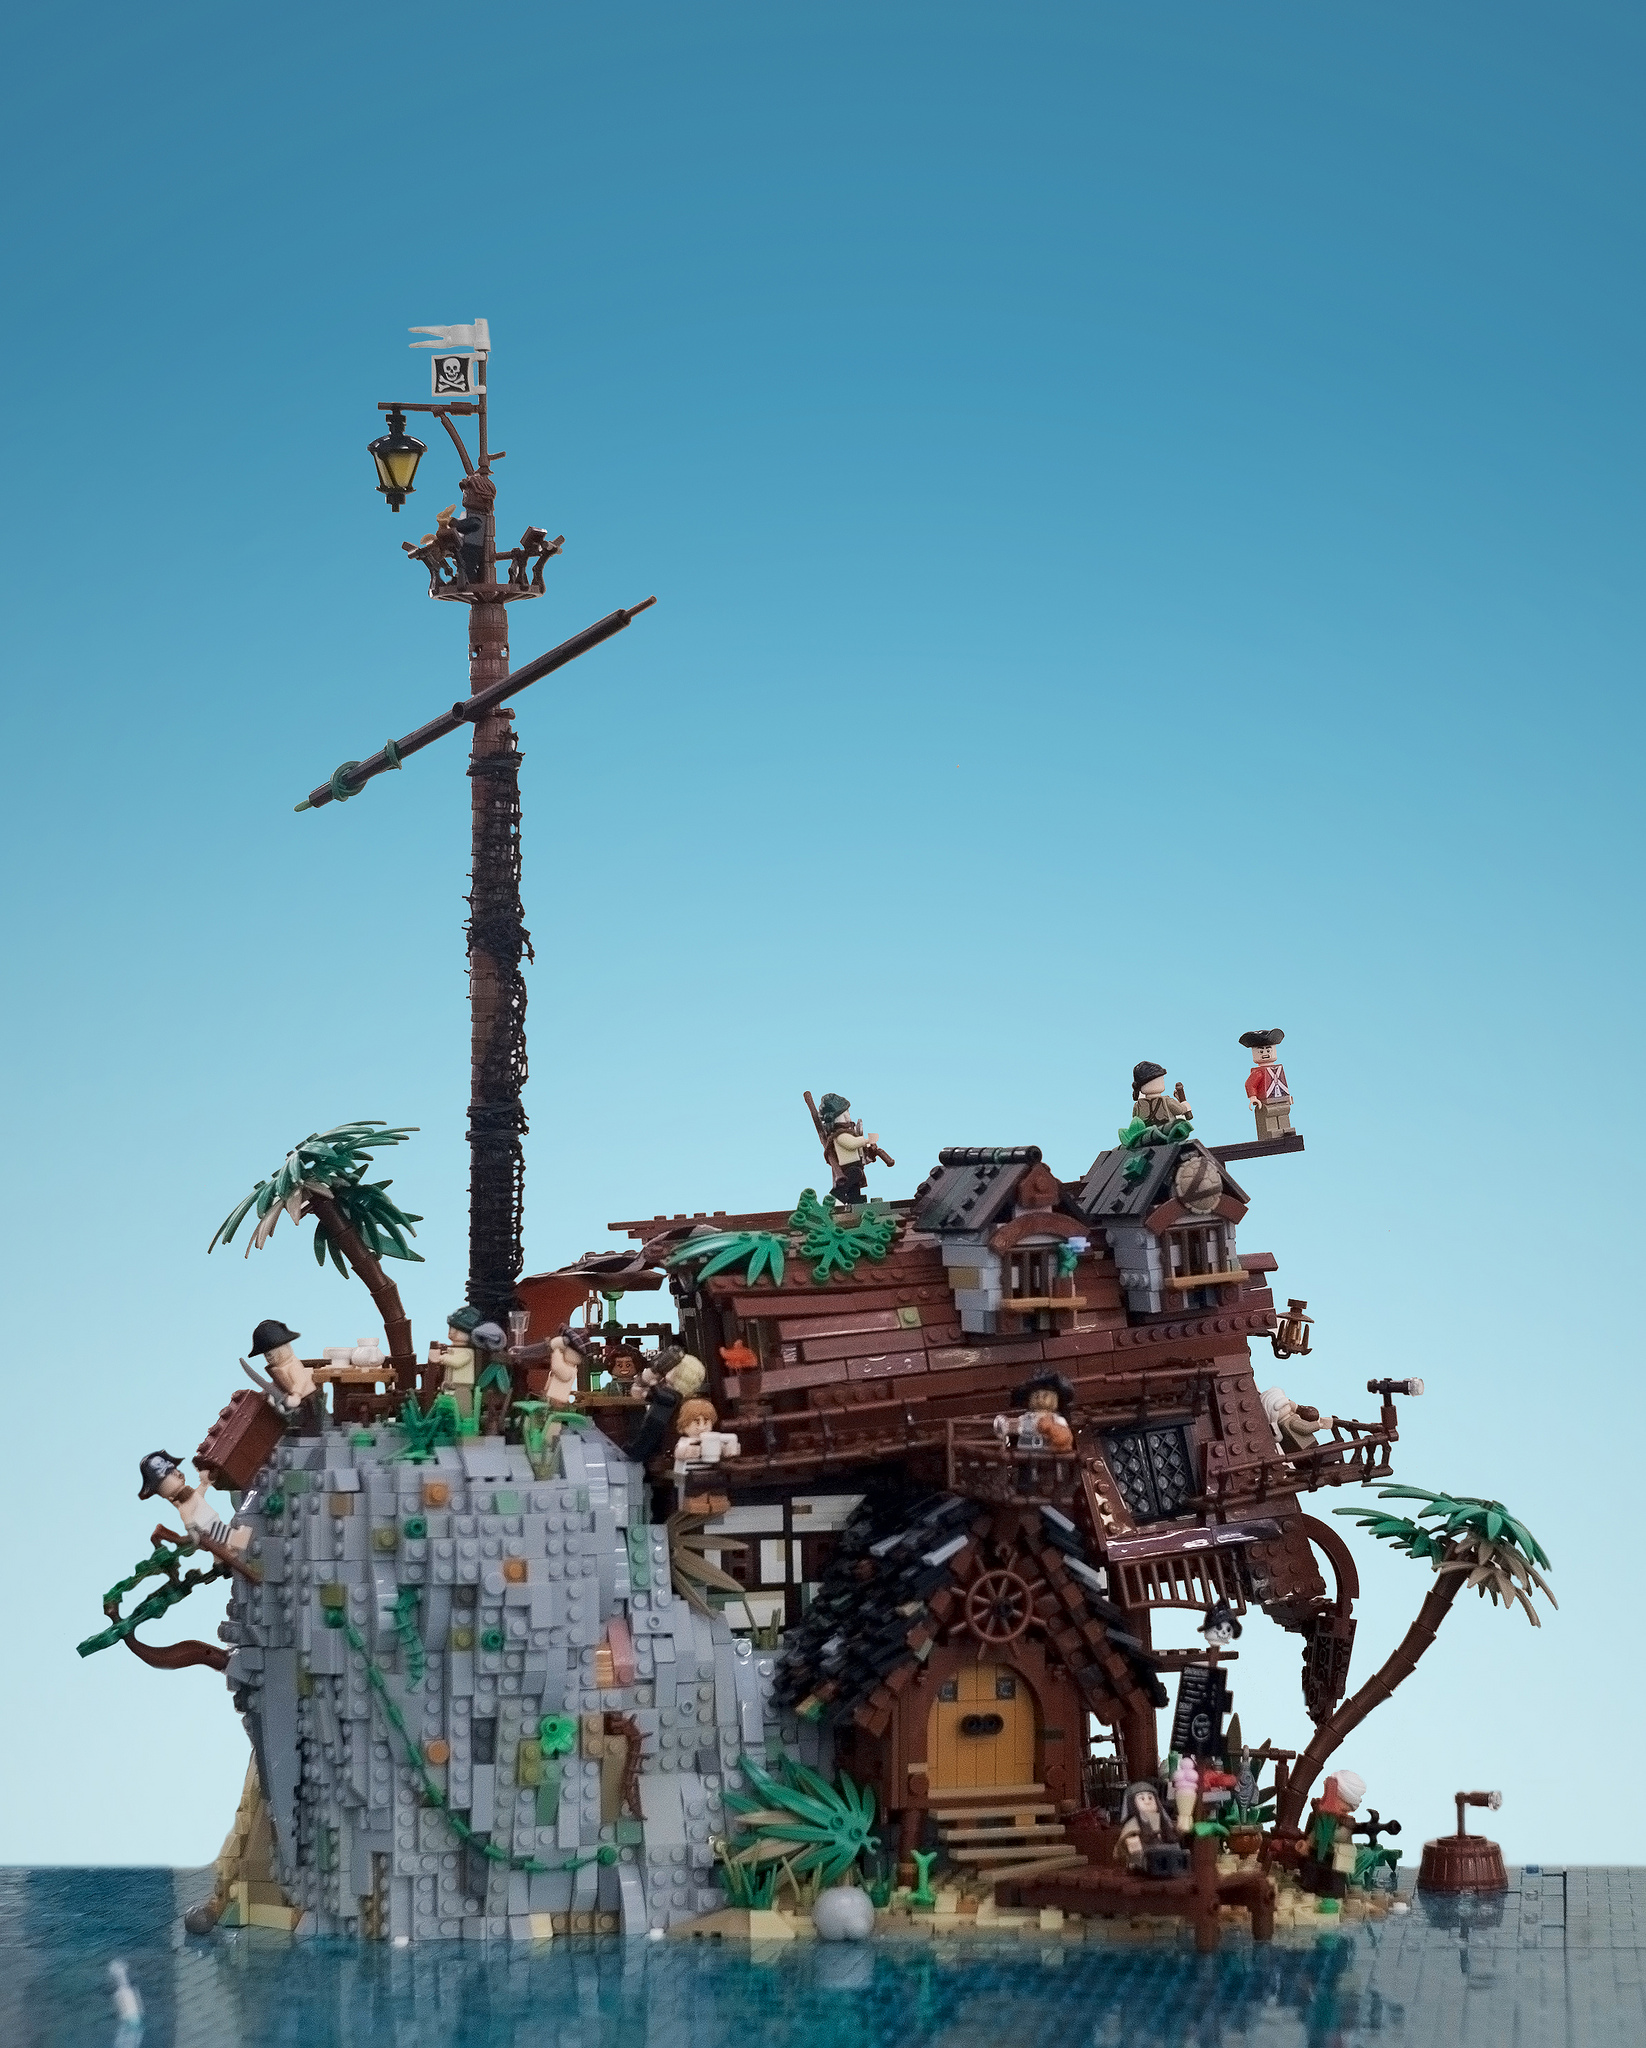 Shipwreck Island Bricknerd Your Place For All Things Lego And The Lego Fan Community